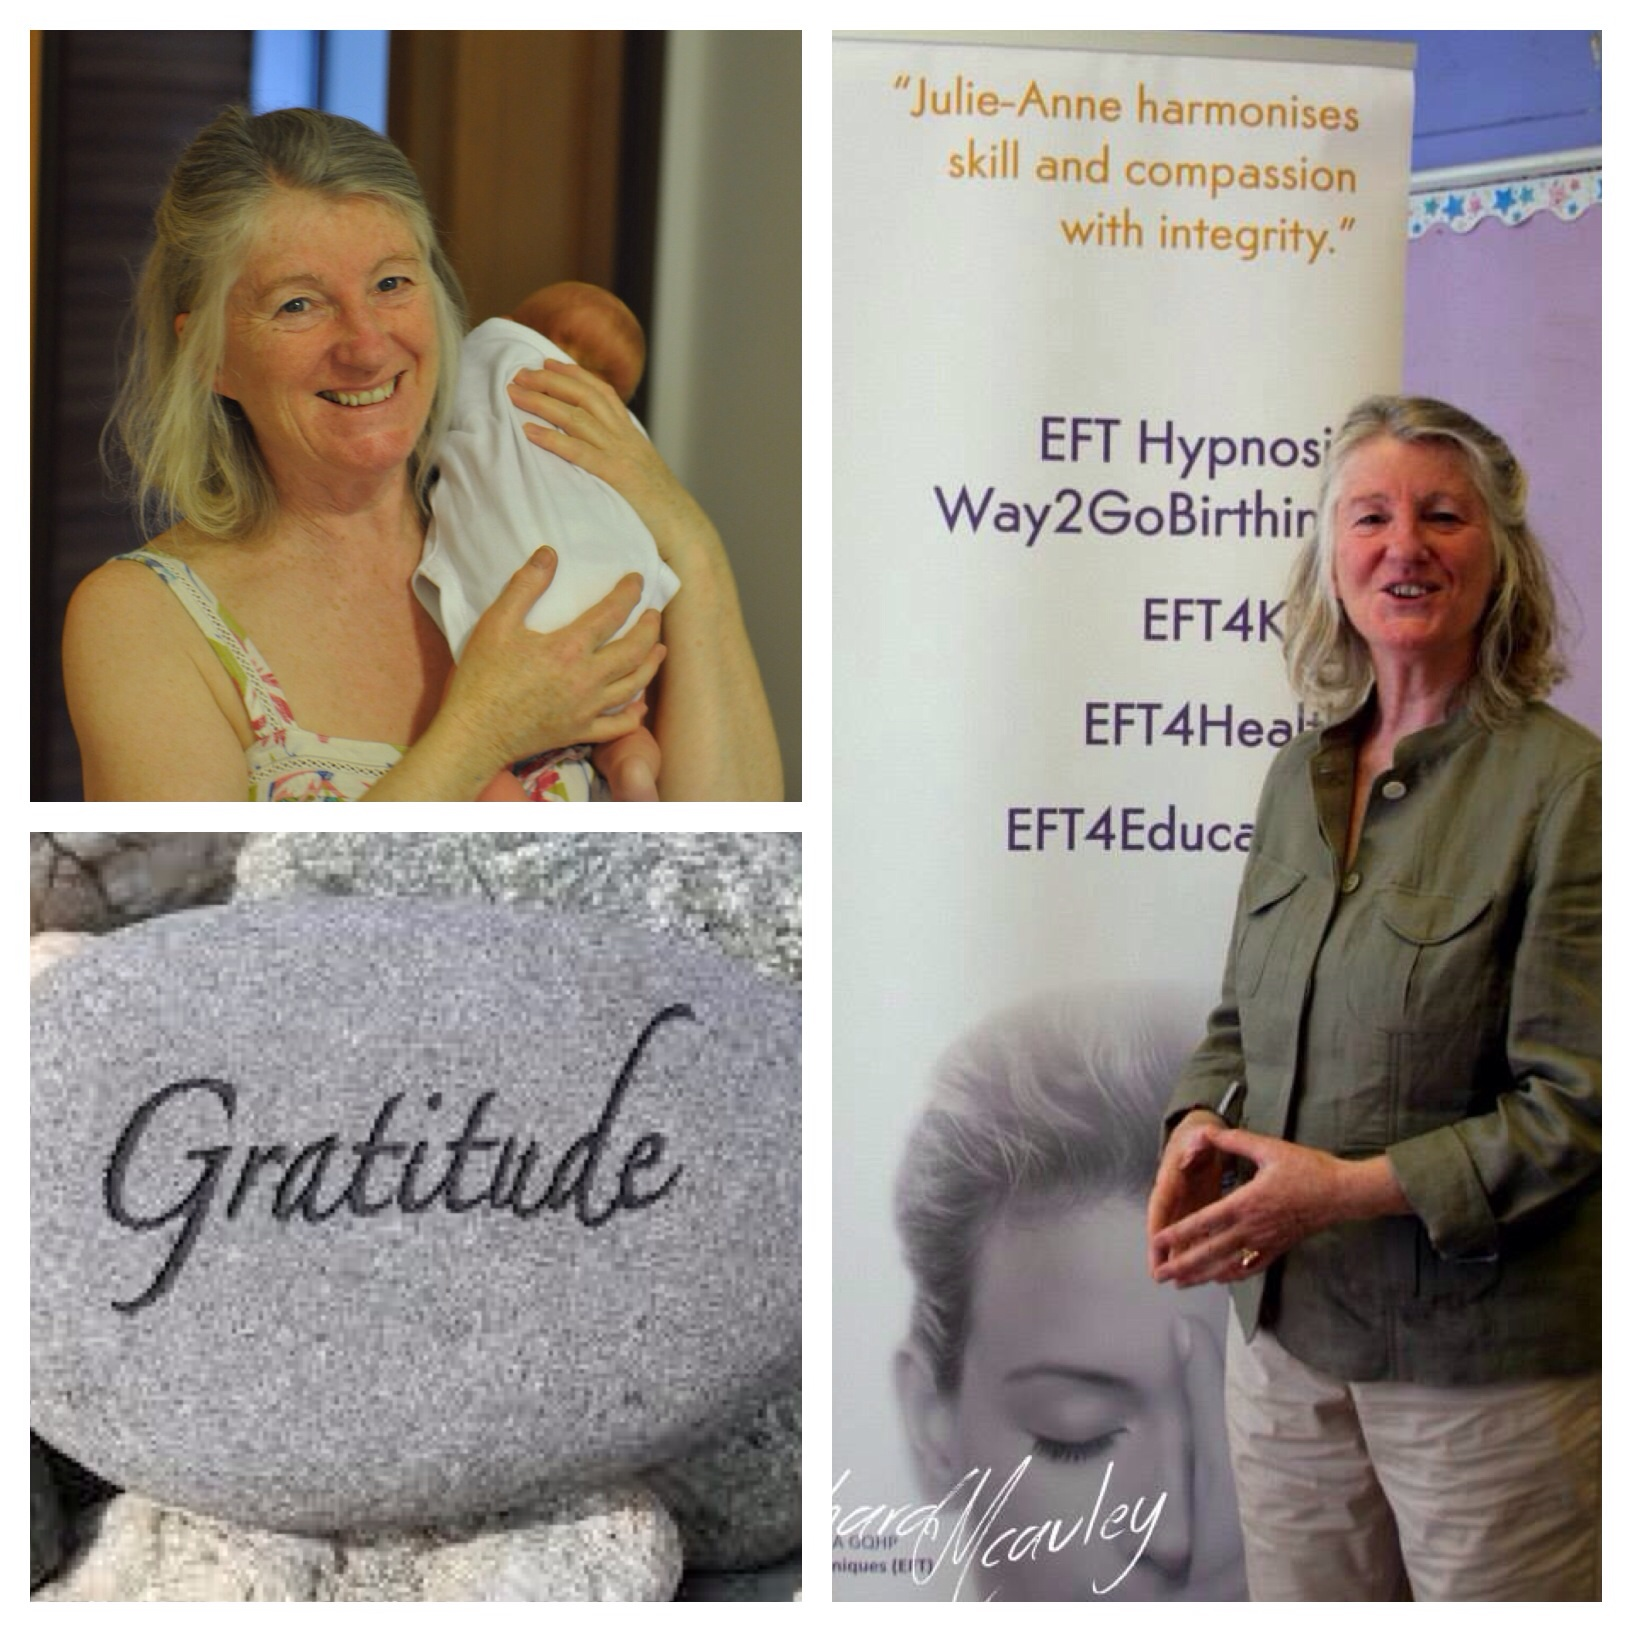 Way2GoBirthing, pregnancy anxiety, HG, morning sickness, Birth healing, phobia, trauma, EFT, EFT Trainer, EFT Adv Practitioner,